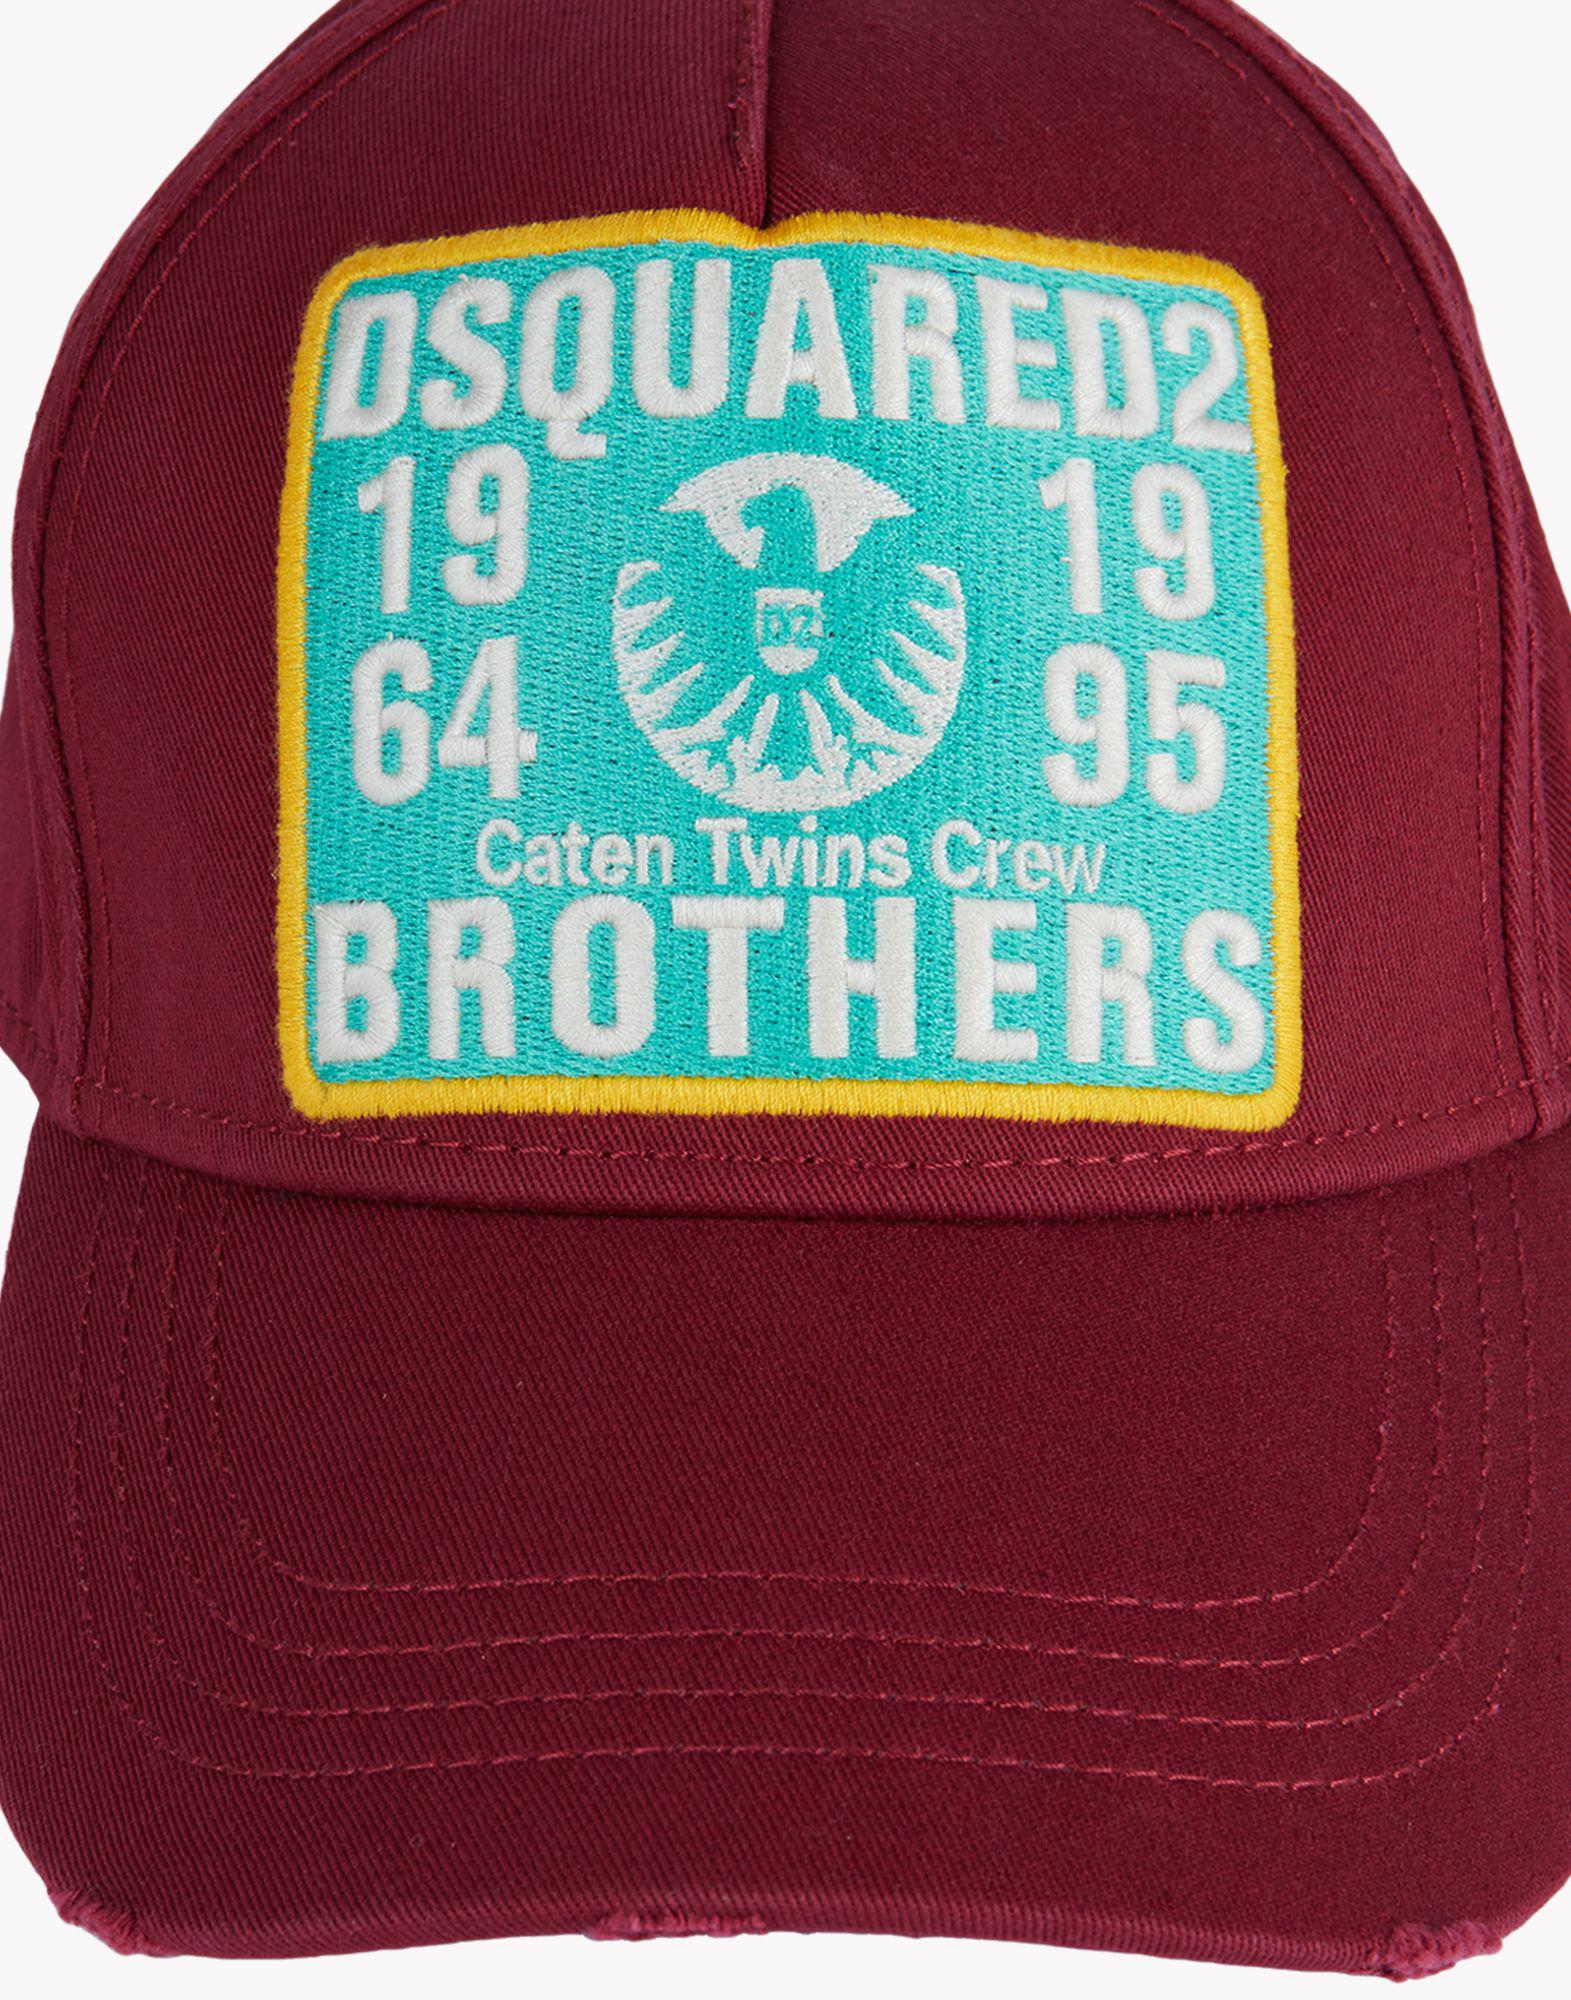 111dee71ec714 Lyst - DSquared² D2 Brothers Baseball Cap in Red for Men